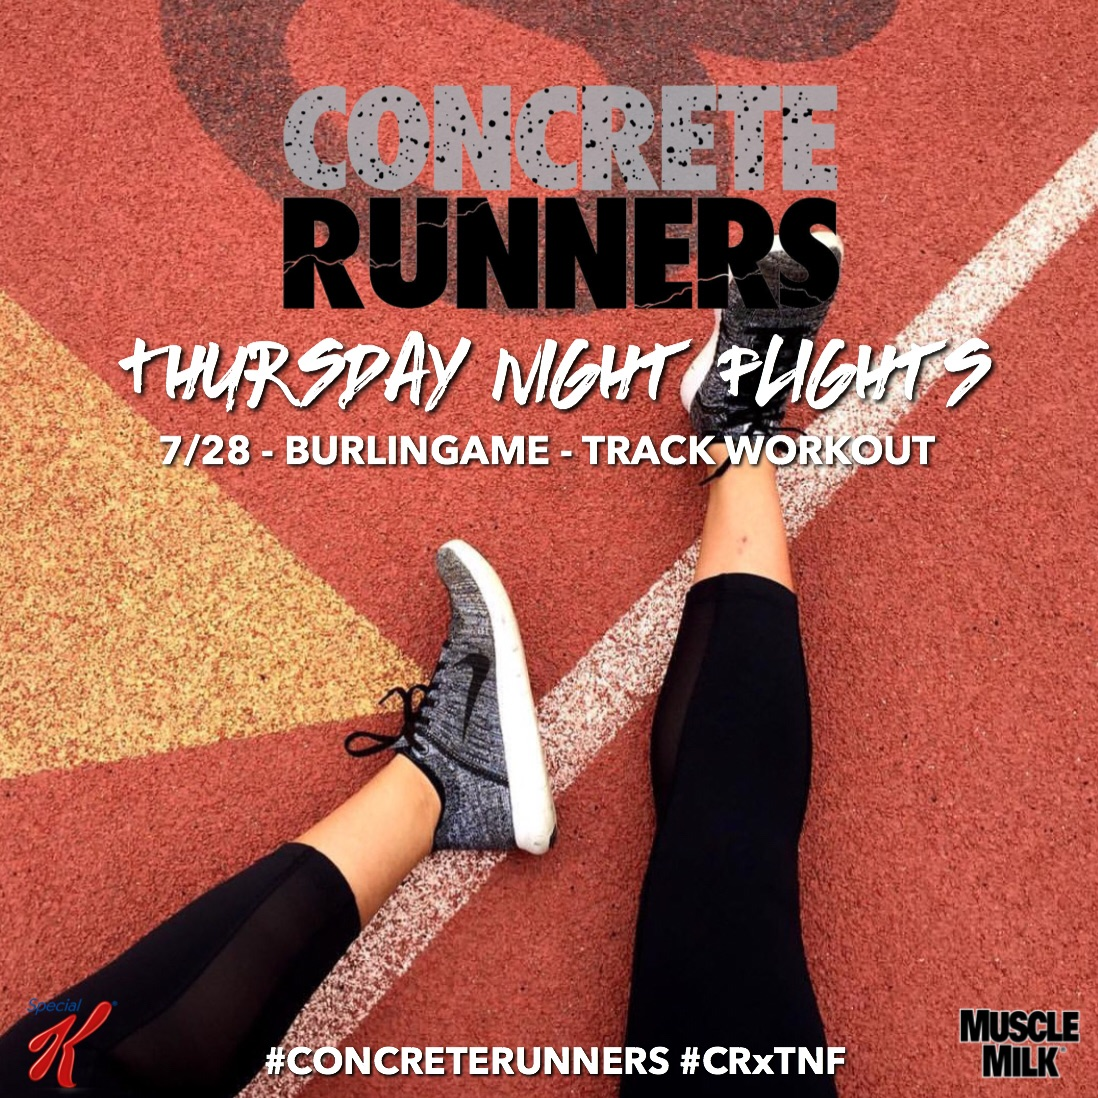 Take flight and RUN with us! Open to everyone, all levels are welcome!    Meeting location: Burlingame High School Track     ➡️ Start time: 6:30 PM ➡️ Check-in: 6:15 PM ➡️ Post Run: Fueled    by  @musclemilk & @specialkus